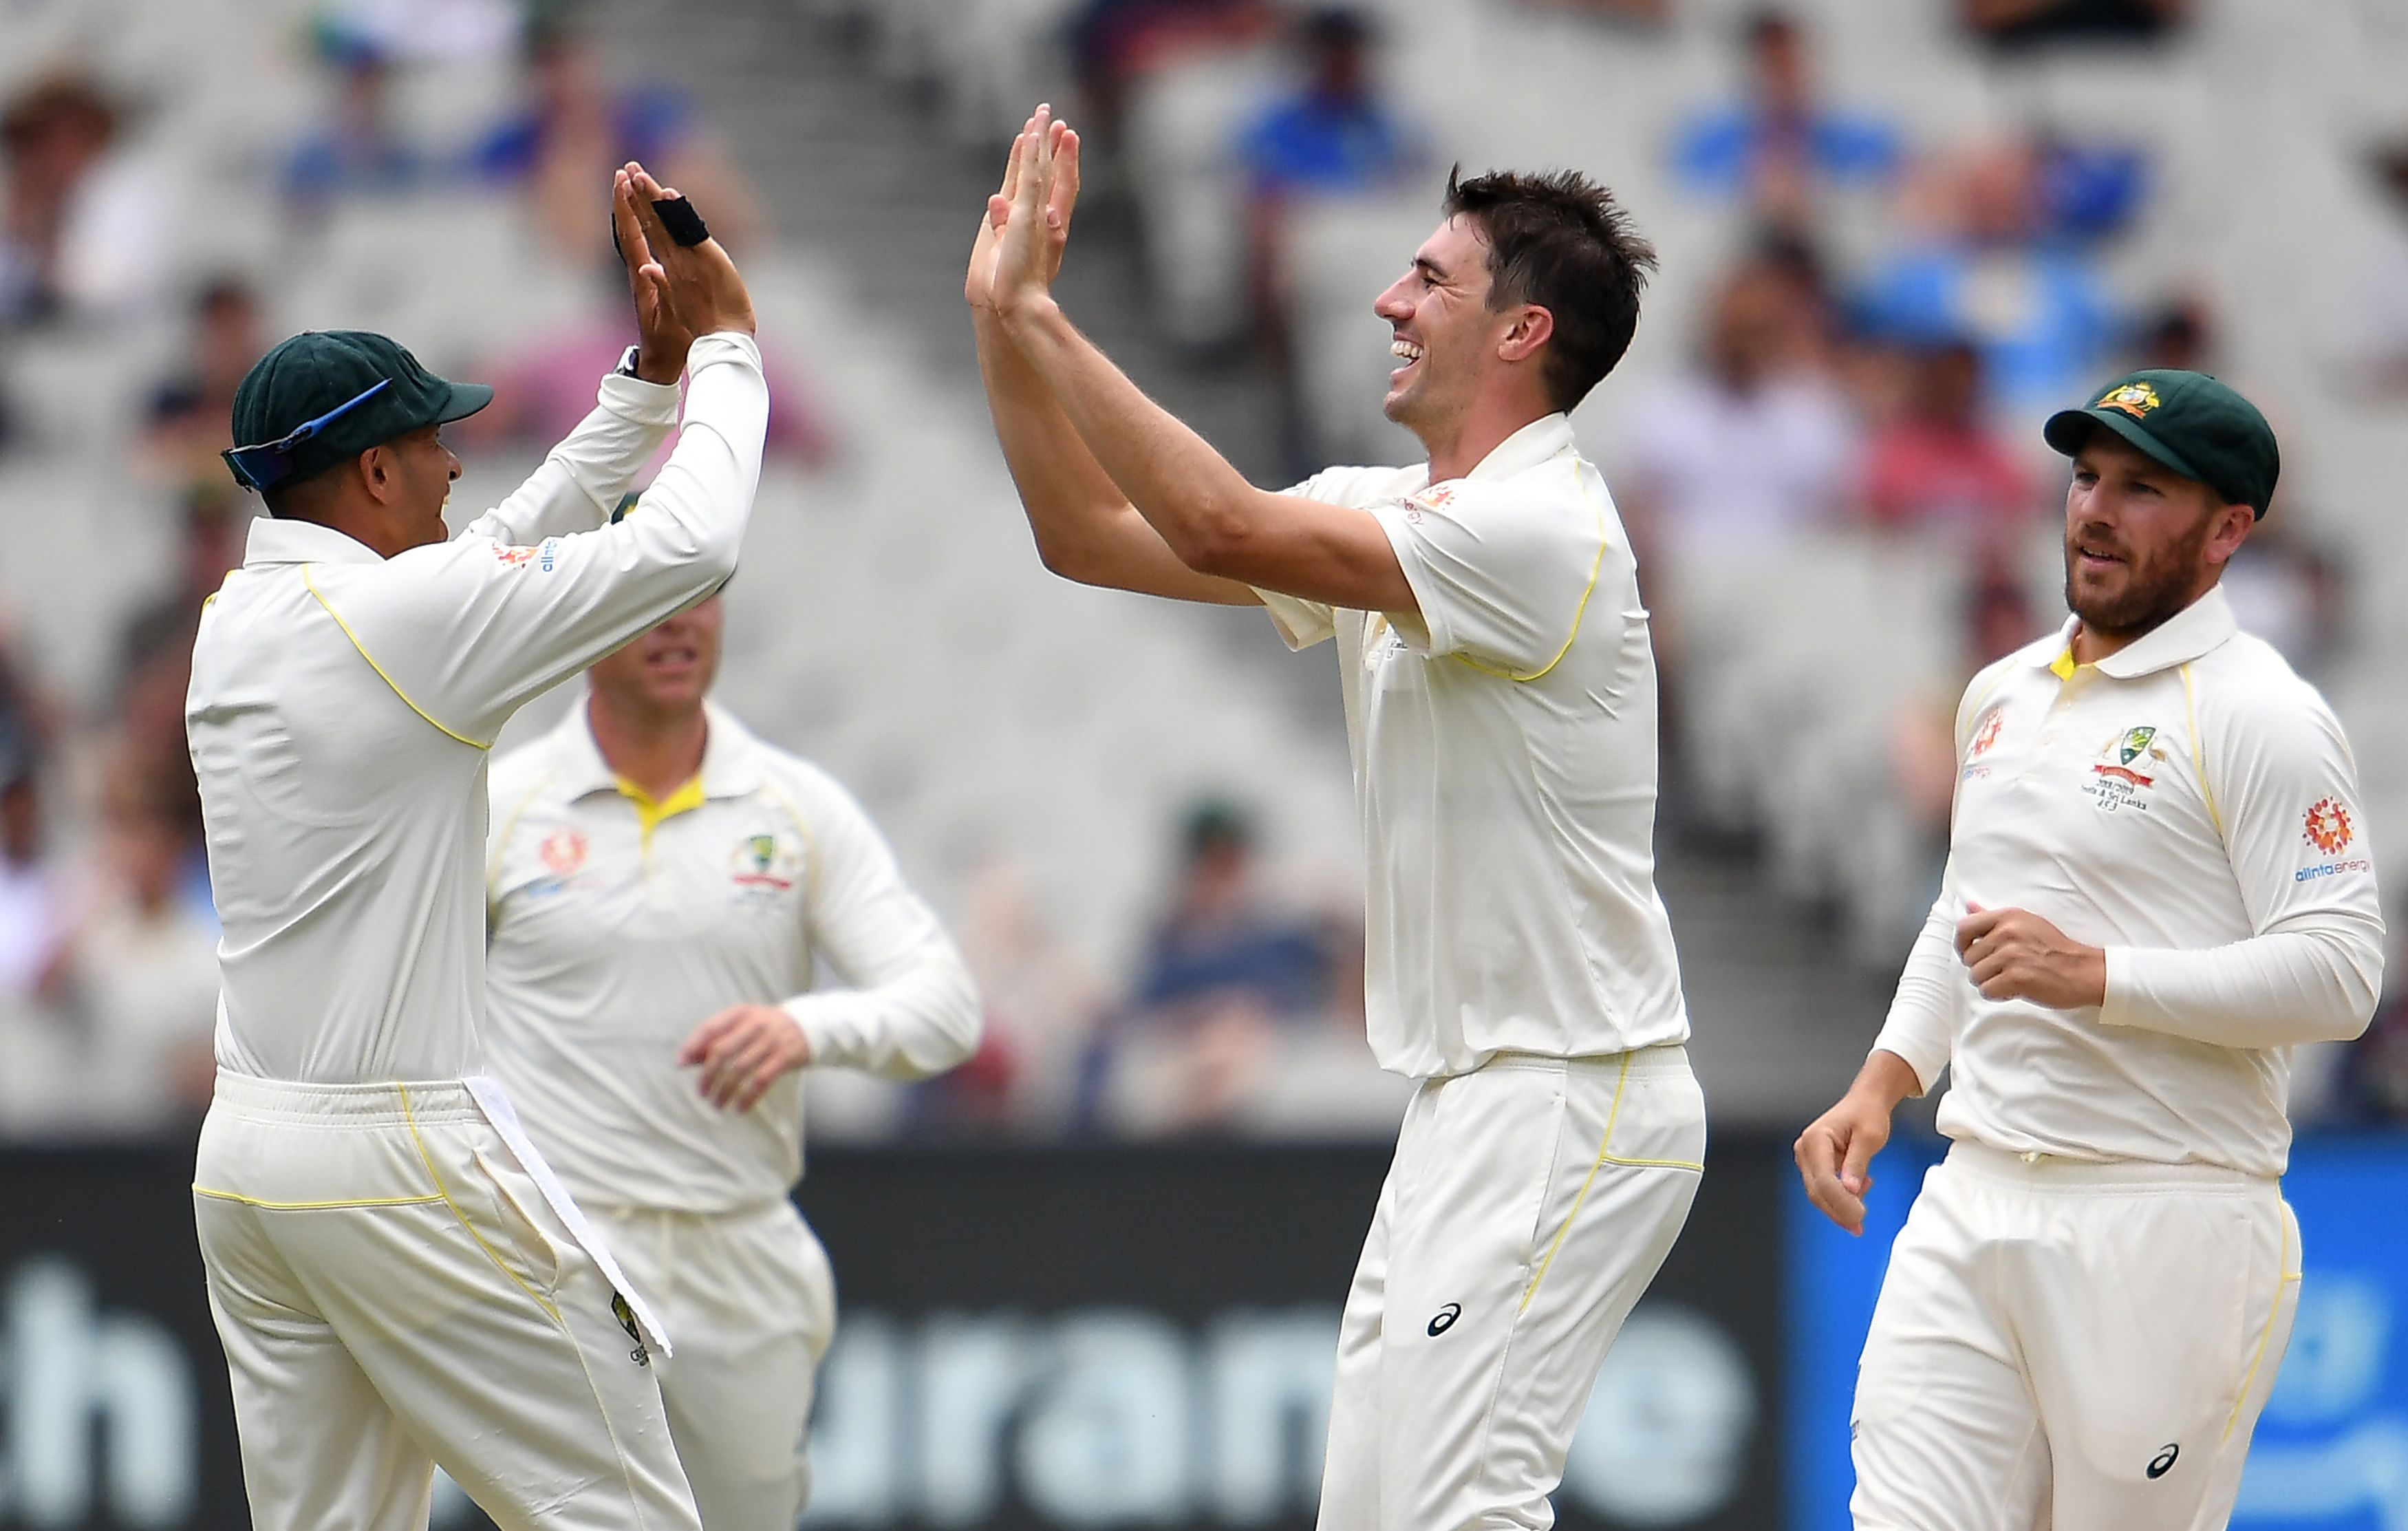 Australia fight back against India in action-packed day three